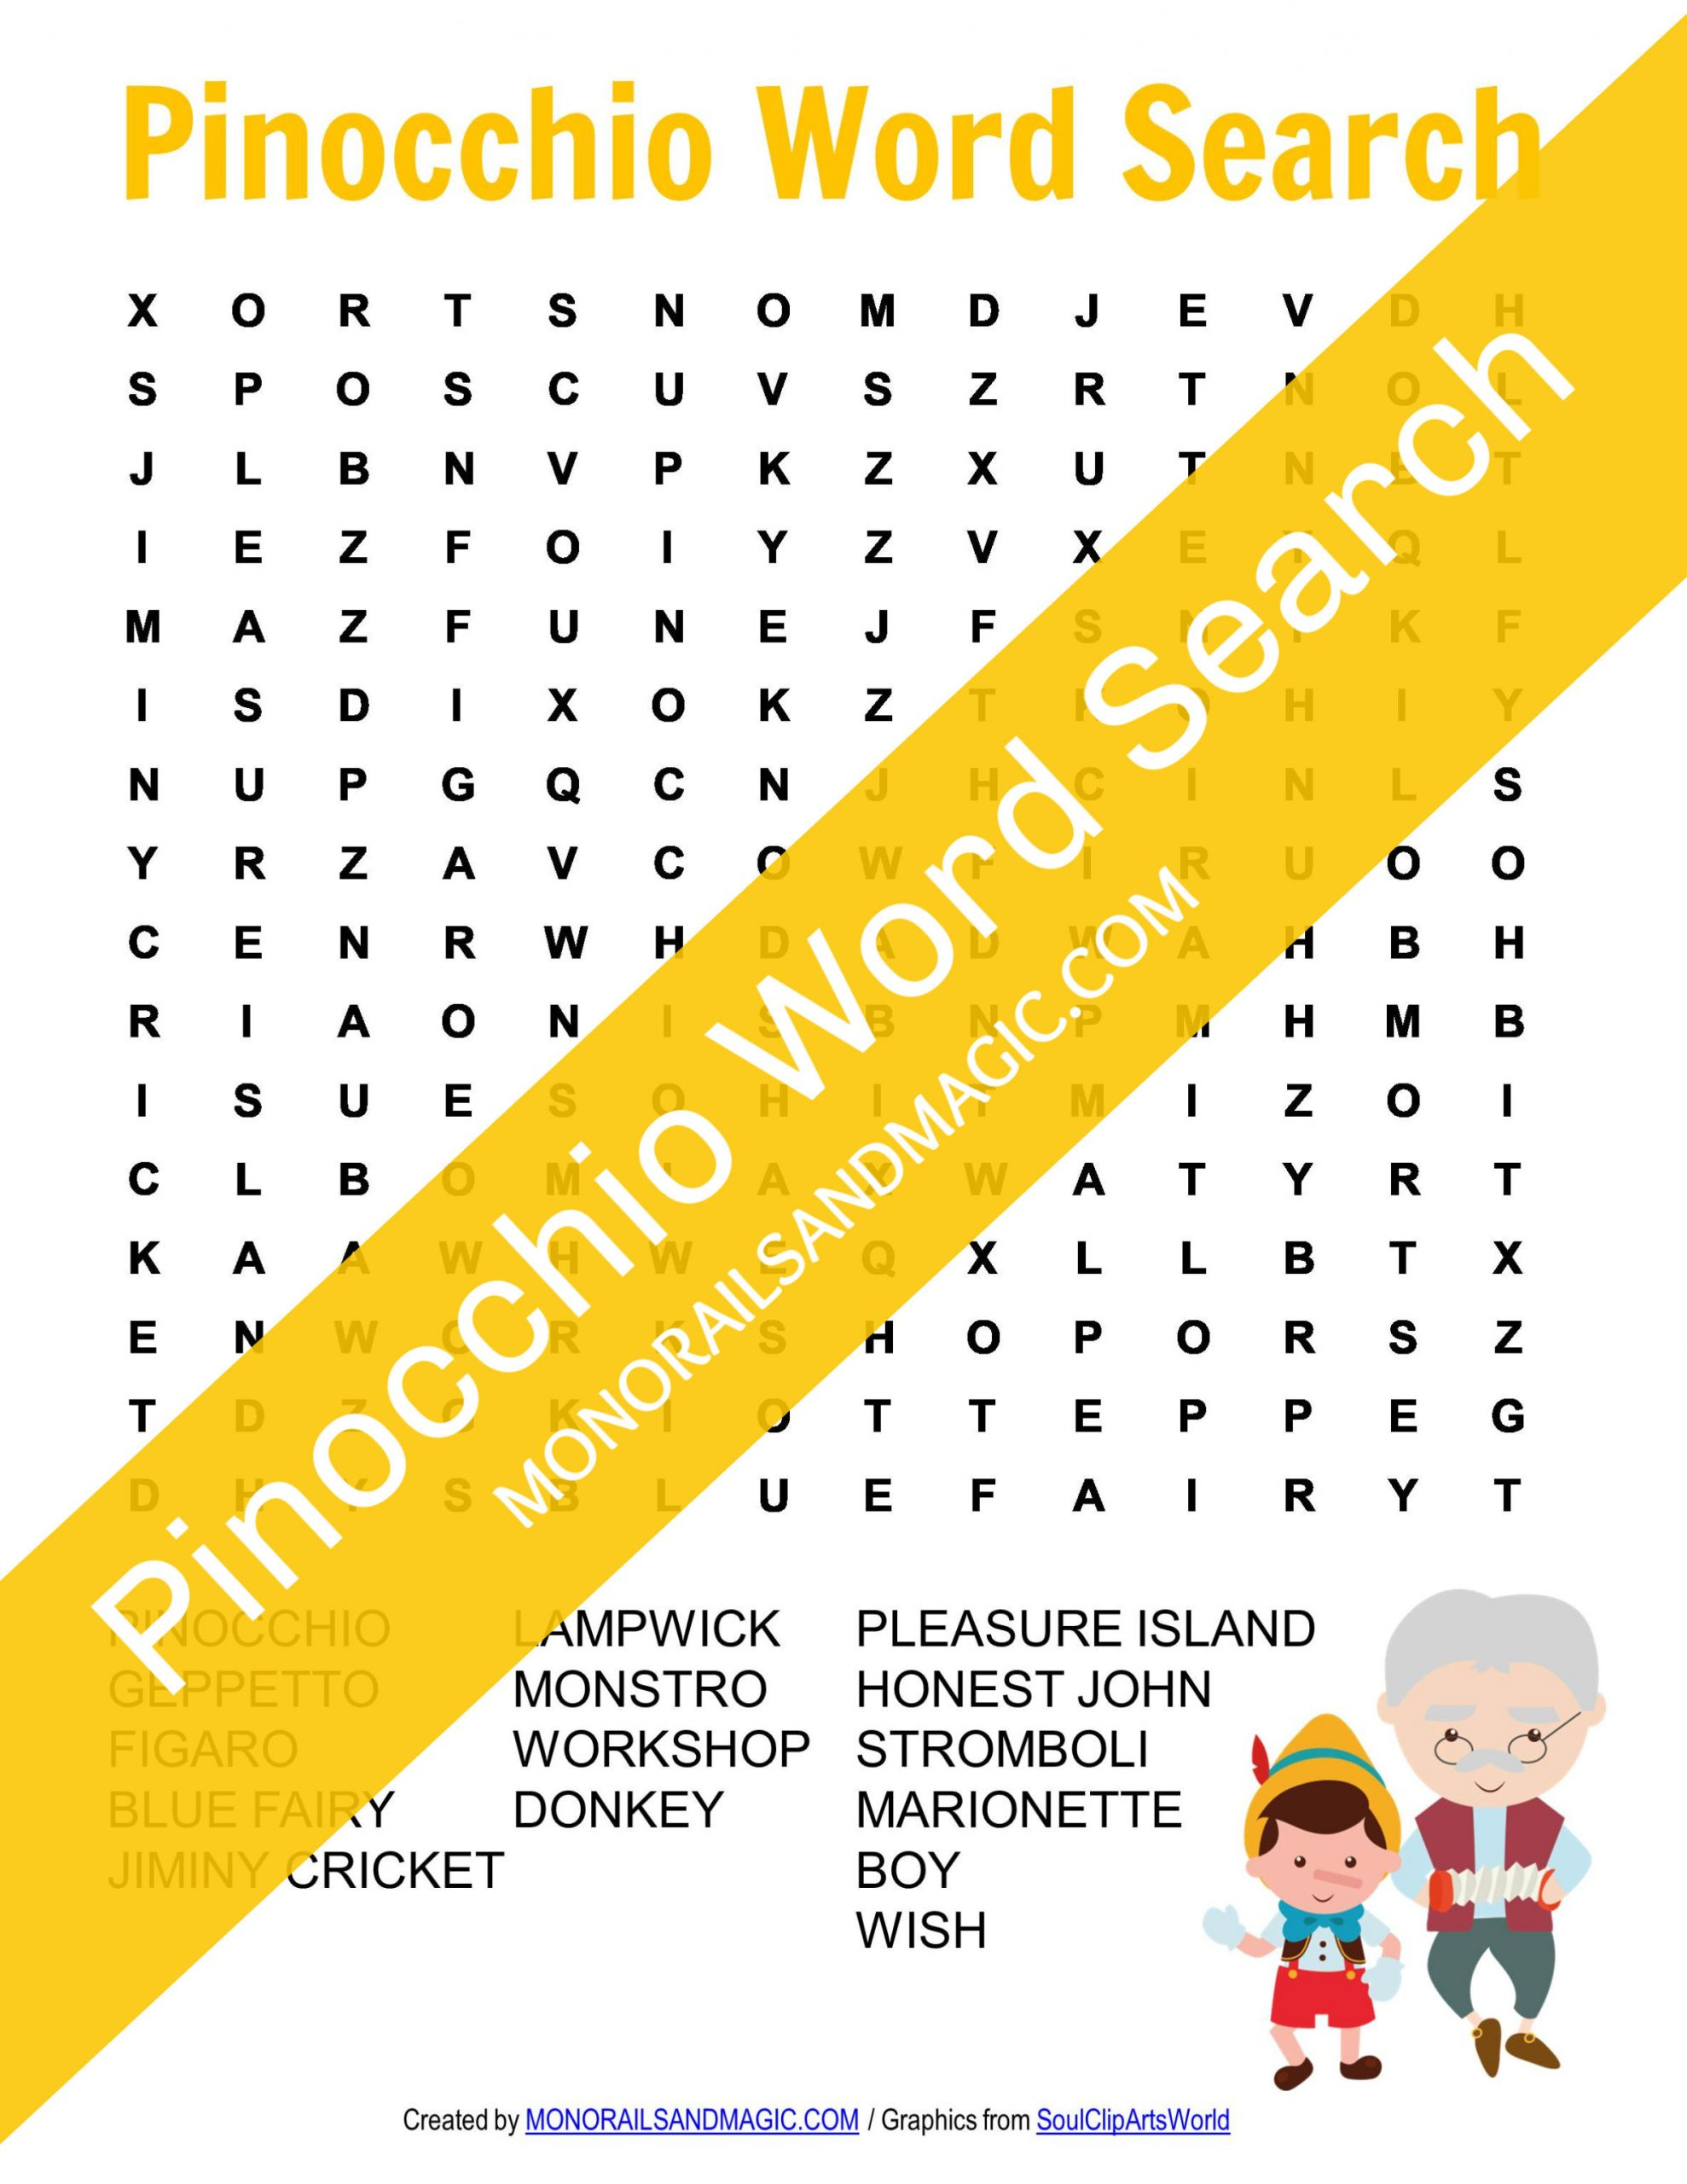 Pinocchio Word Search Free Printable